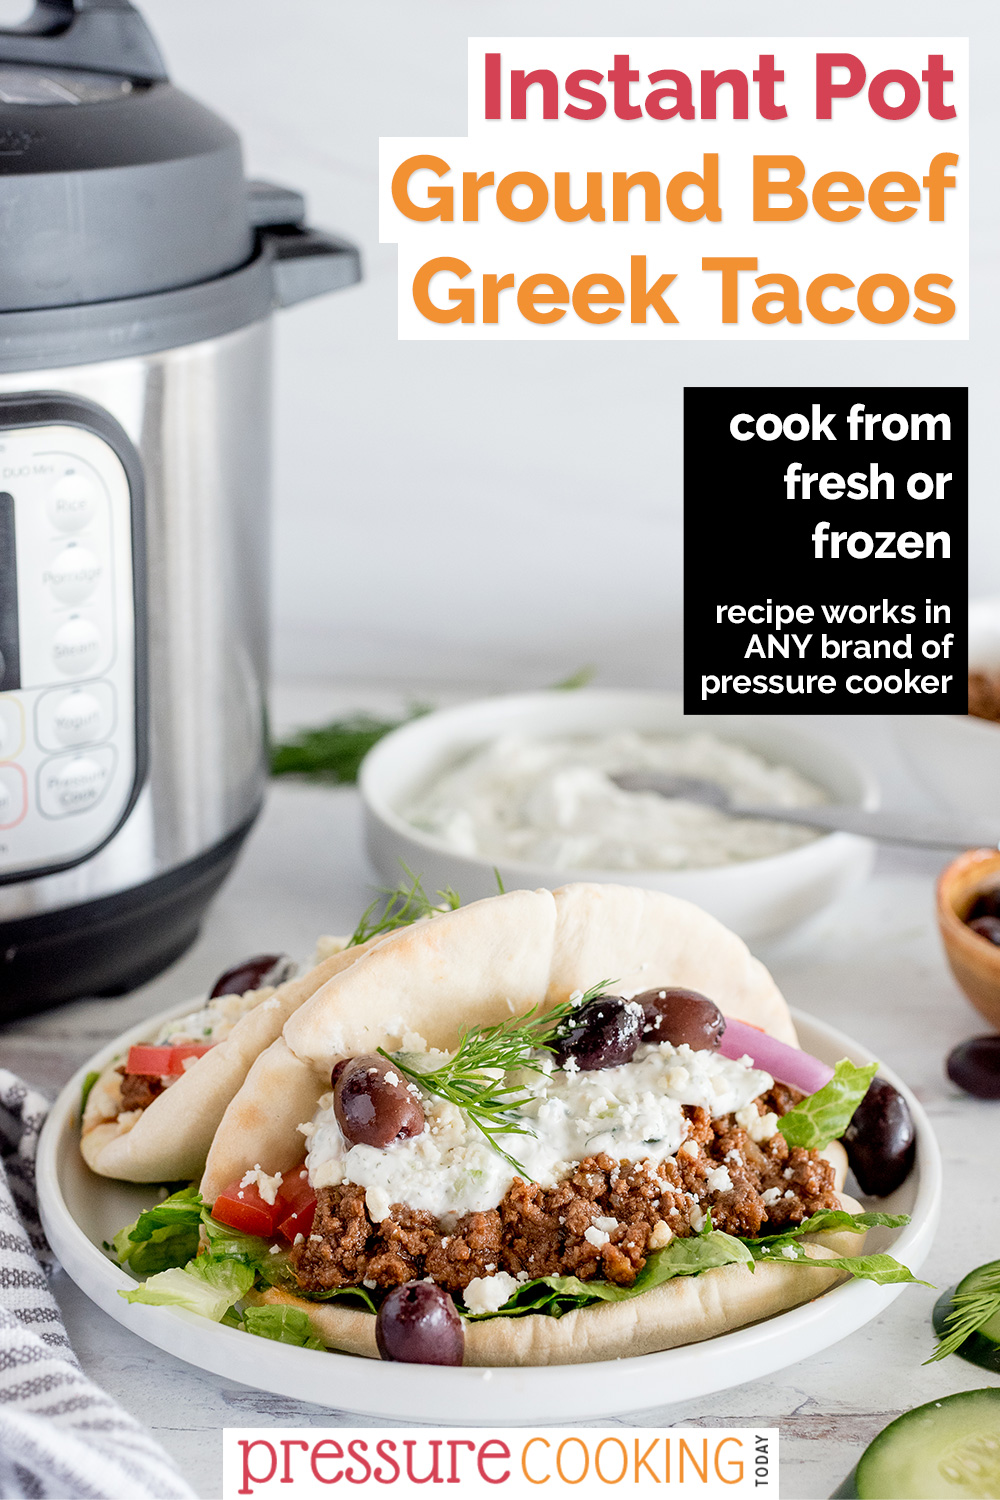 Pinterest image promoting Instant Pot Ground Beef Greek Tacos, with a photo of two greek tacos topped with white Tzatziki sauce, dill, and olives, with an Instant Pot and more Tzatziki sauce in the background via @PressureCook2da